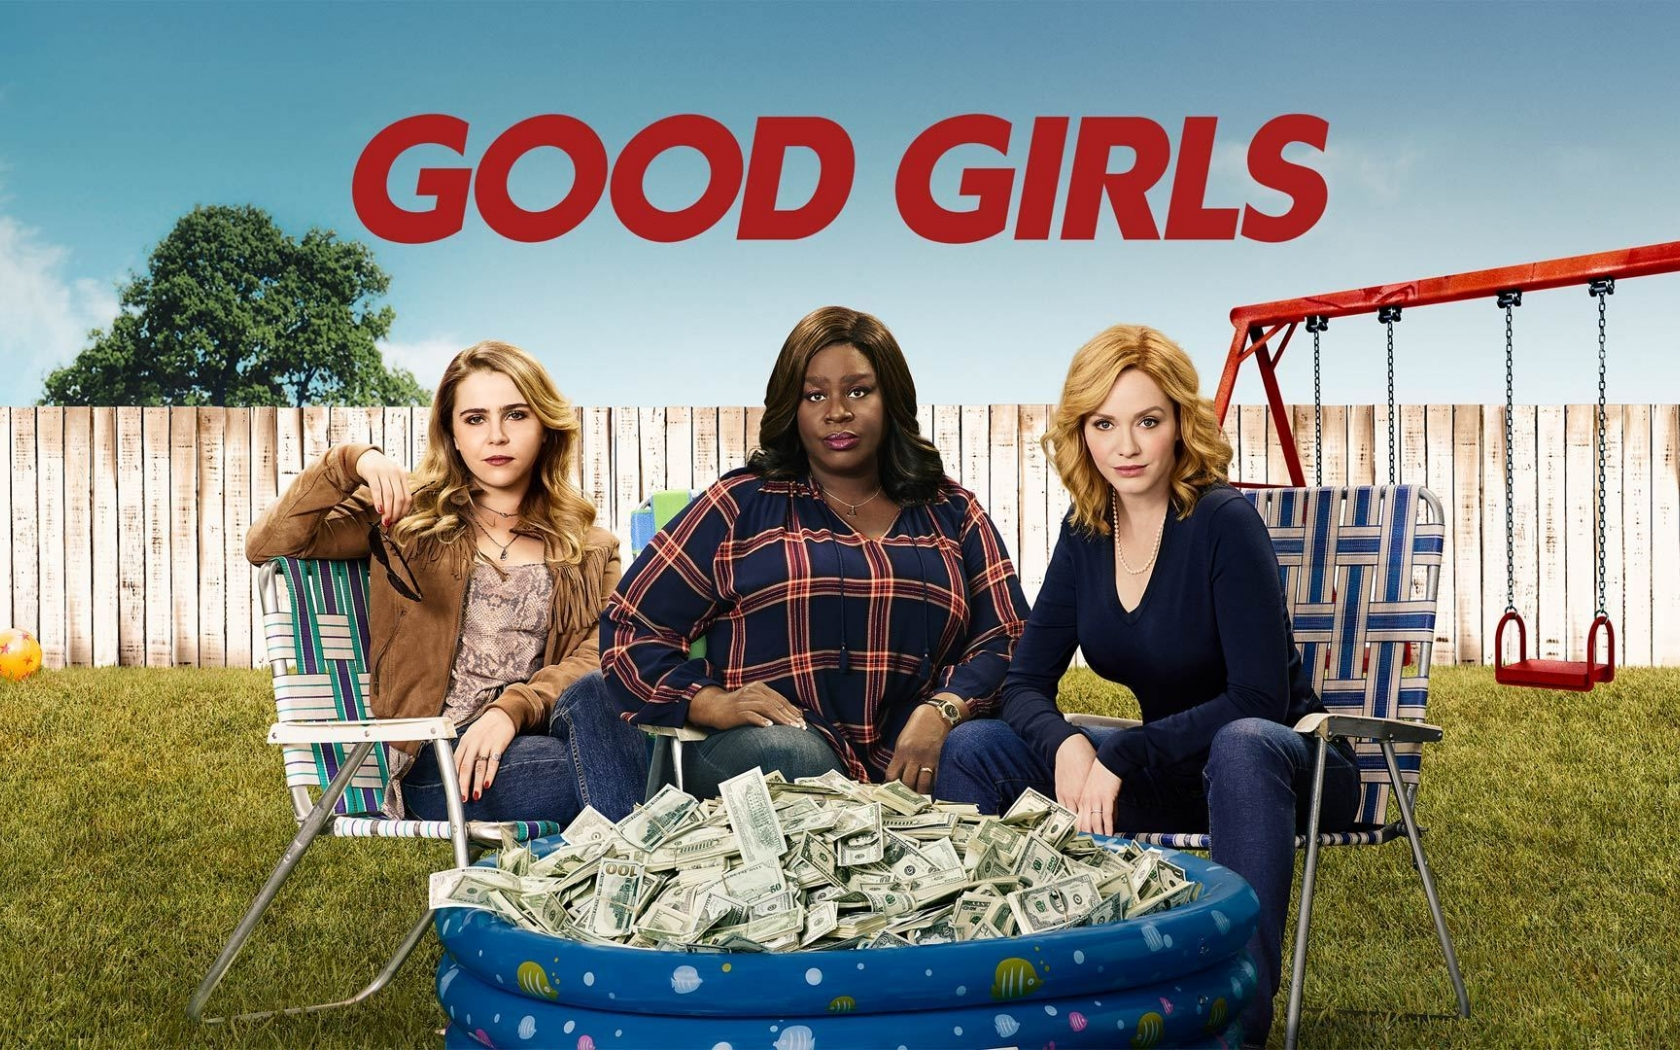 good girls tv show wallpaper 70352